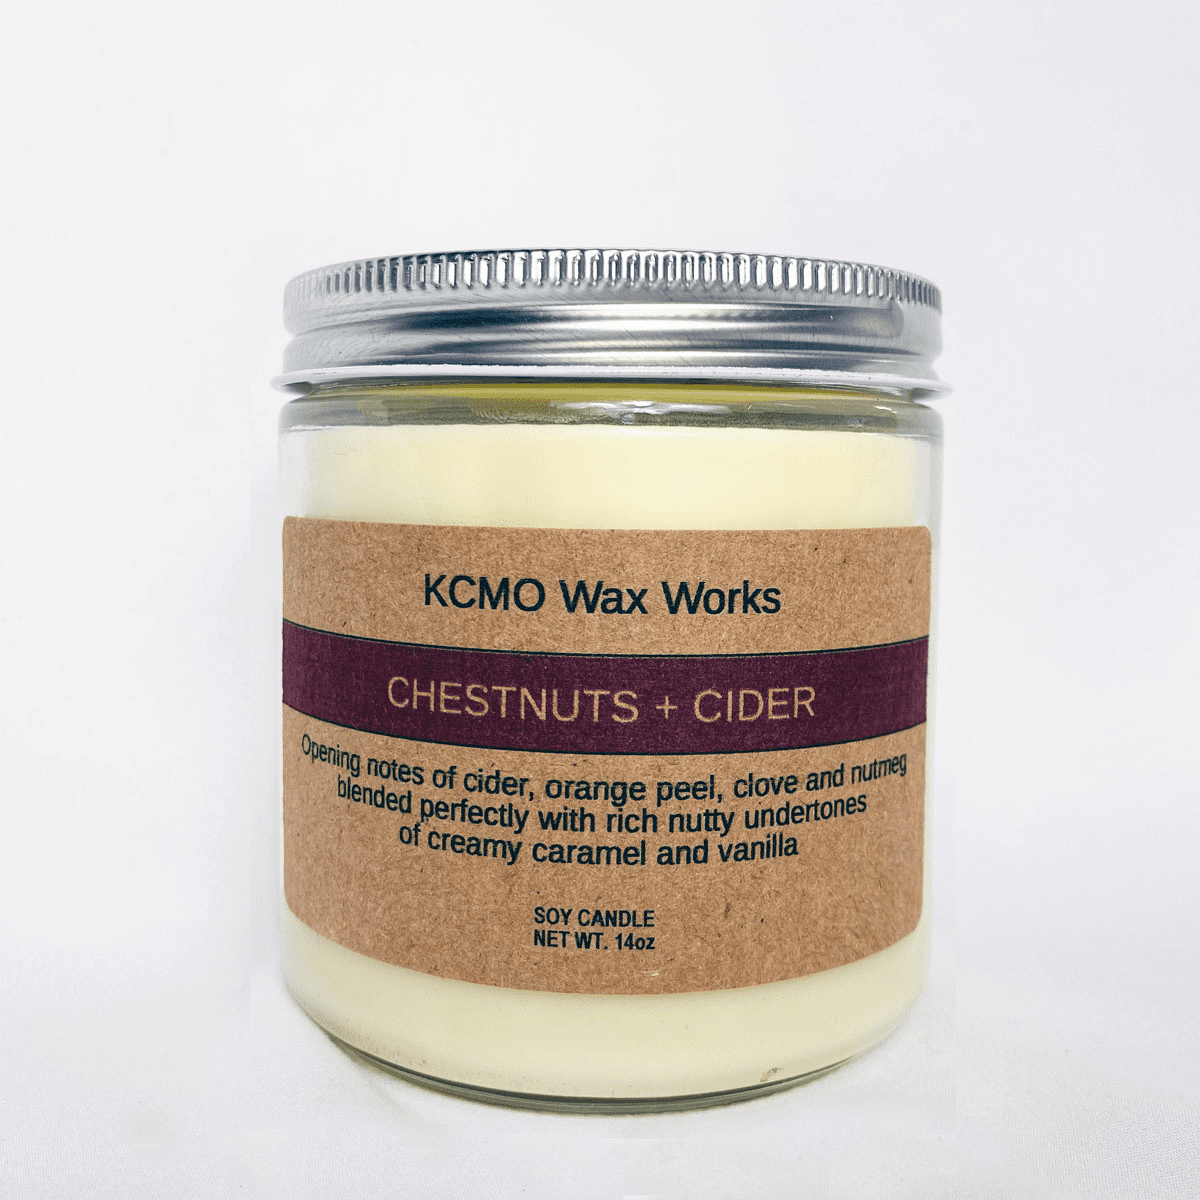 KCMO Wax Works Chestnuts & Cider Soy Candle